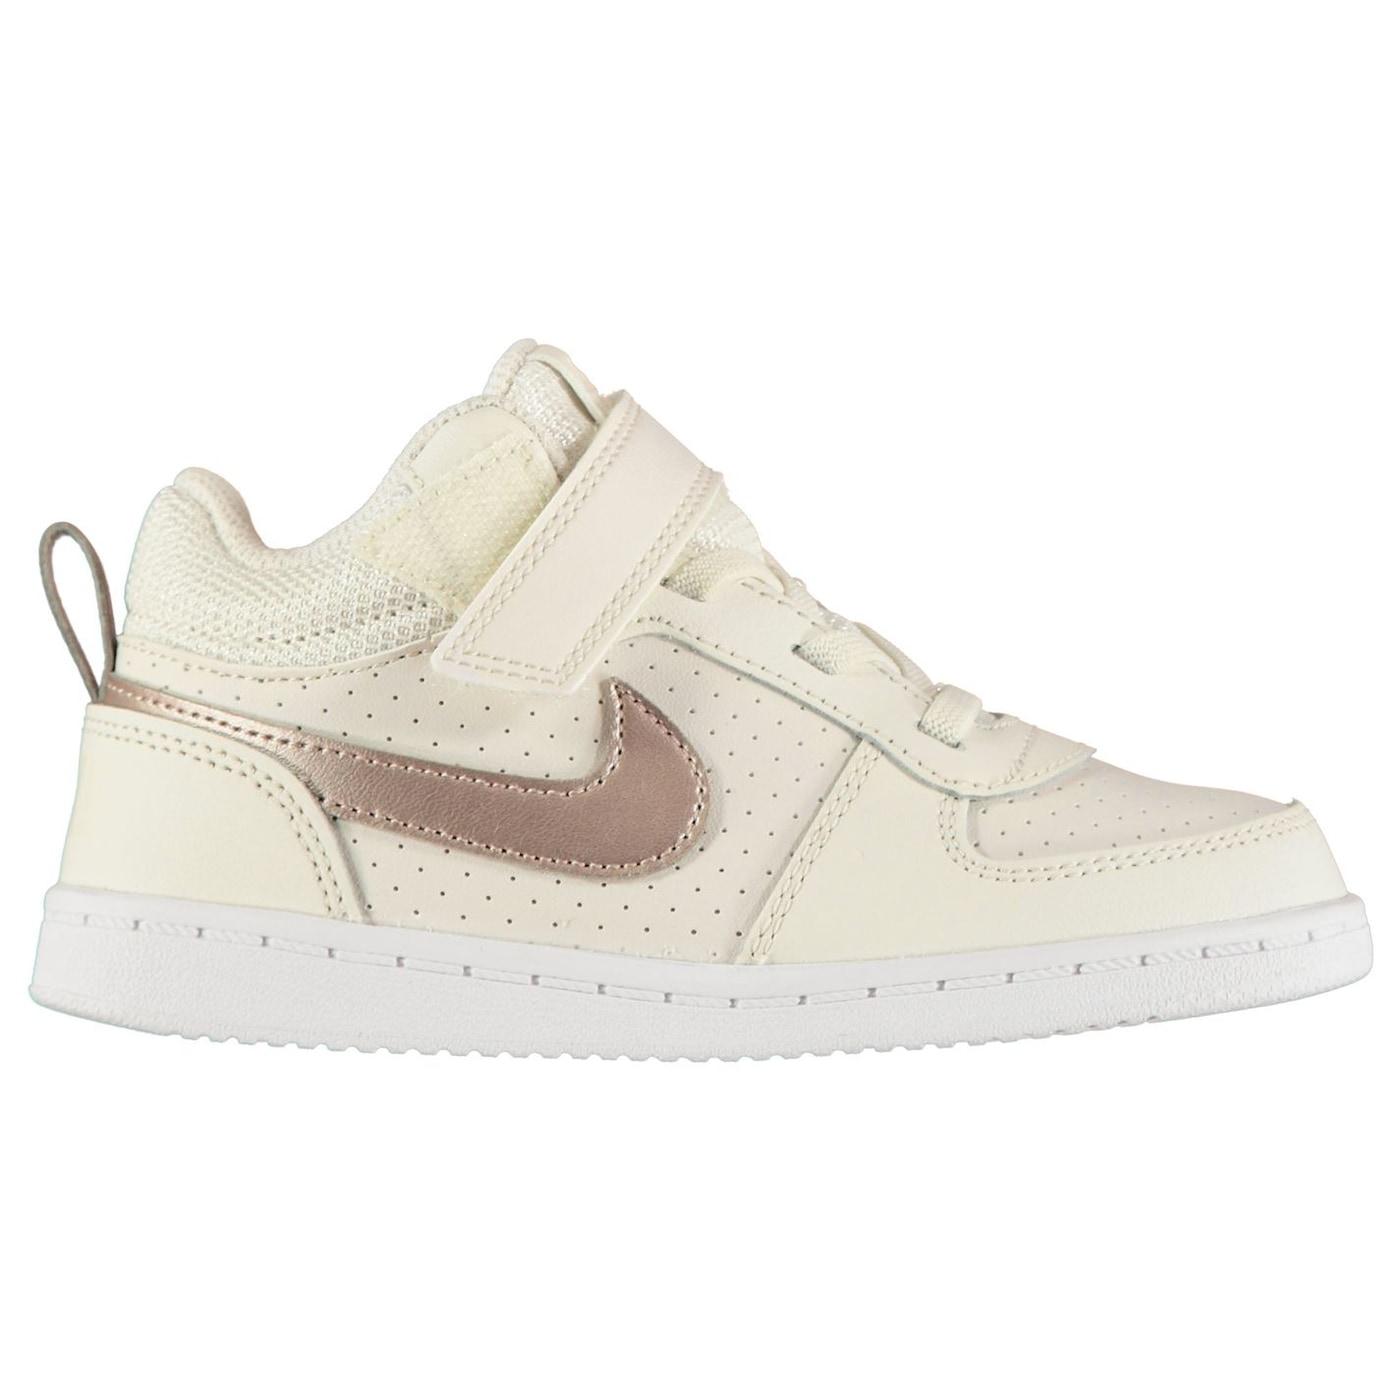 Nike Court Borough Mid Infant Girls Trainers